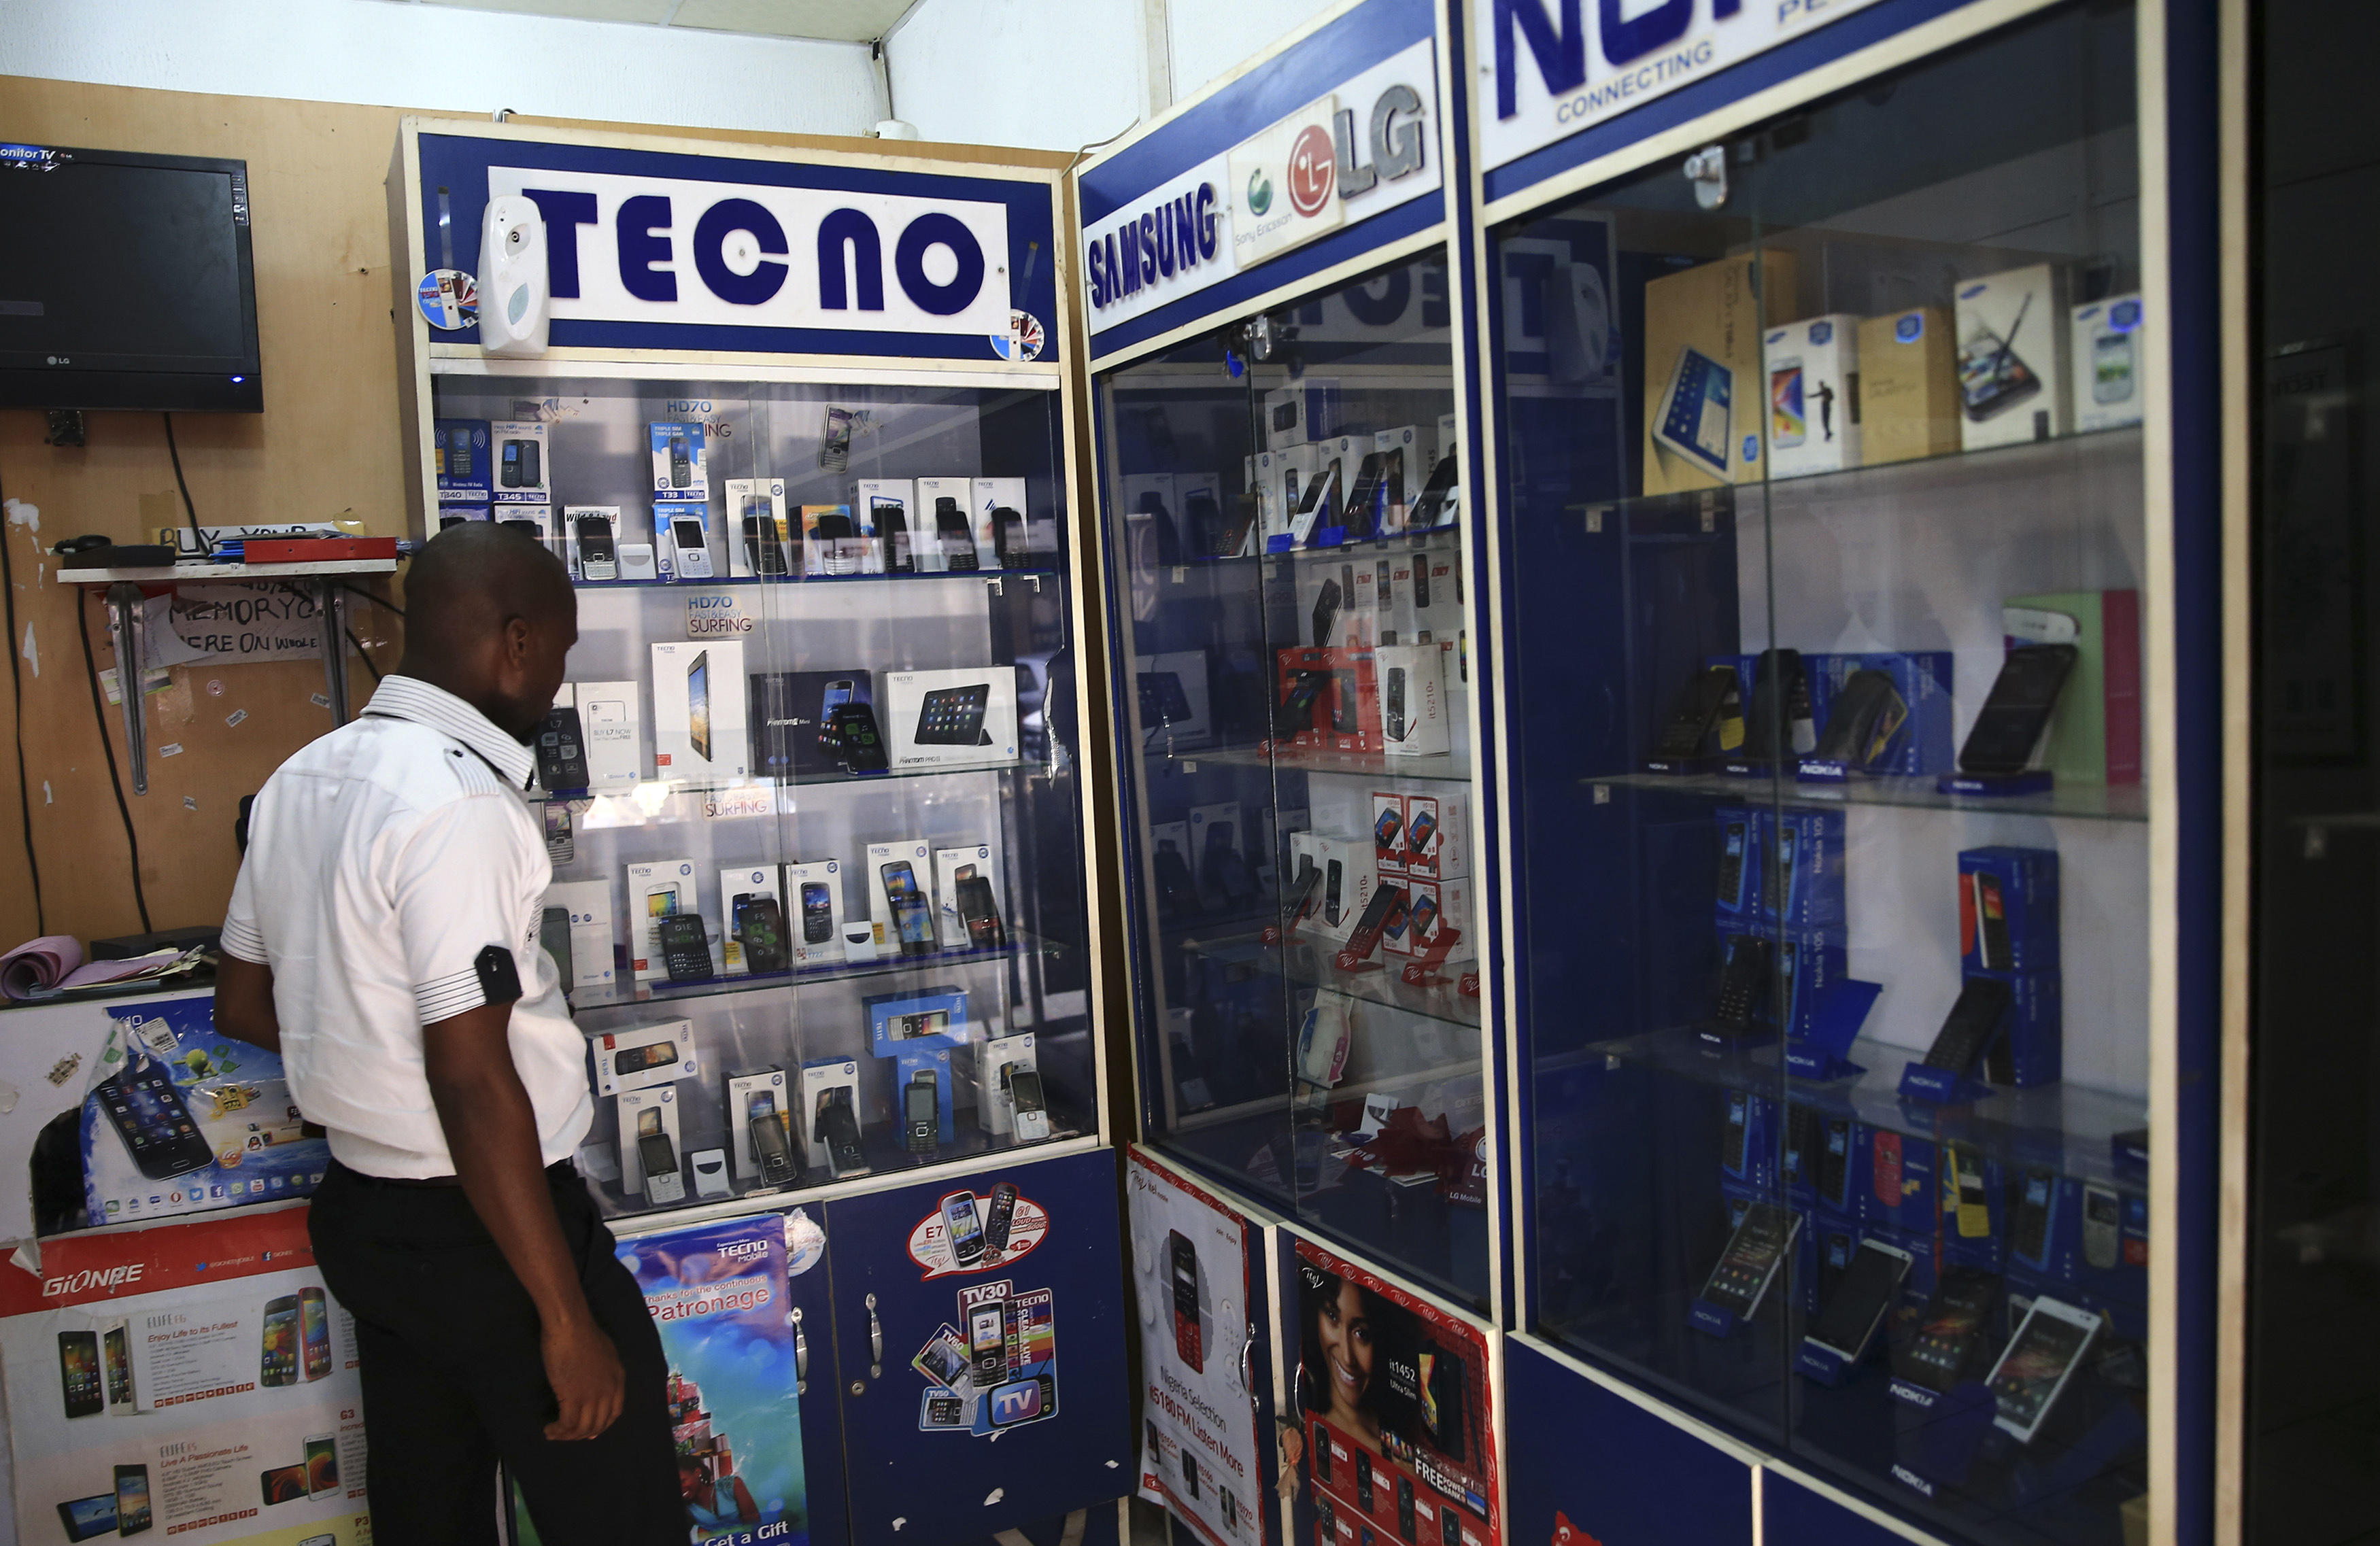 A man looks at smartphones on display at a shop at Wuse II business district in Abuja, Nigeria, Dec. 9, 2014. (Reuters)